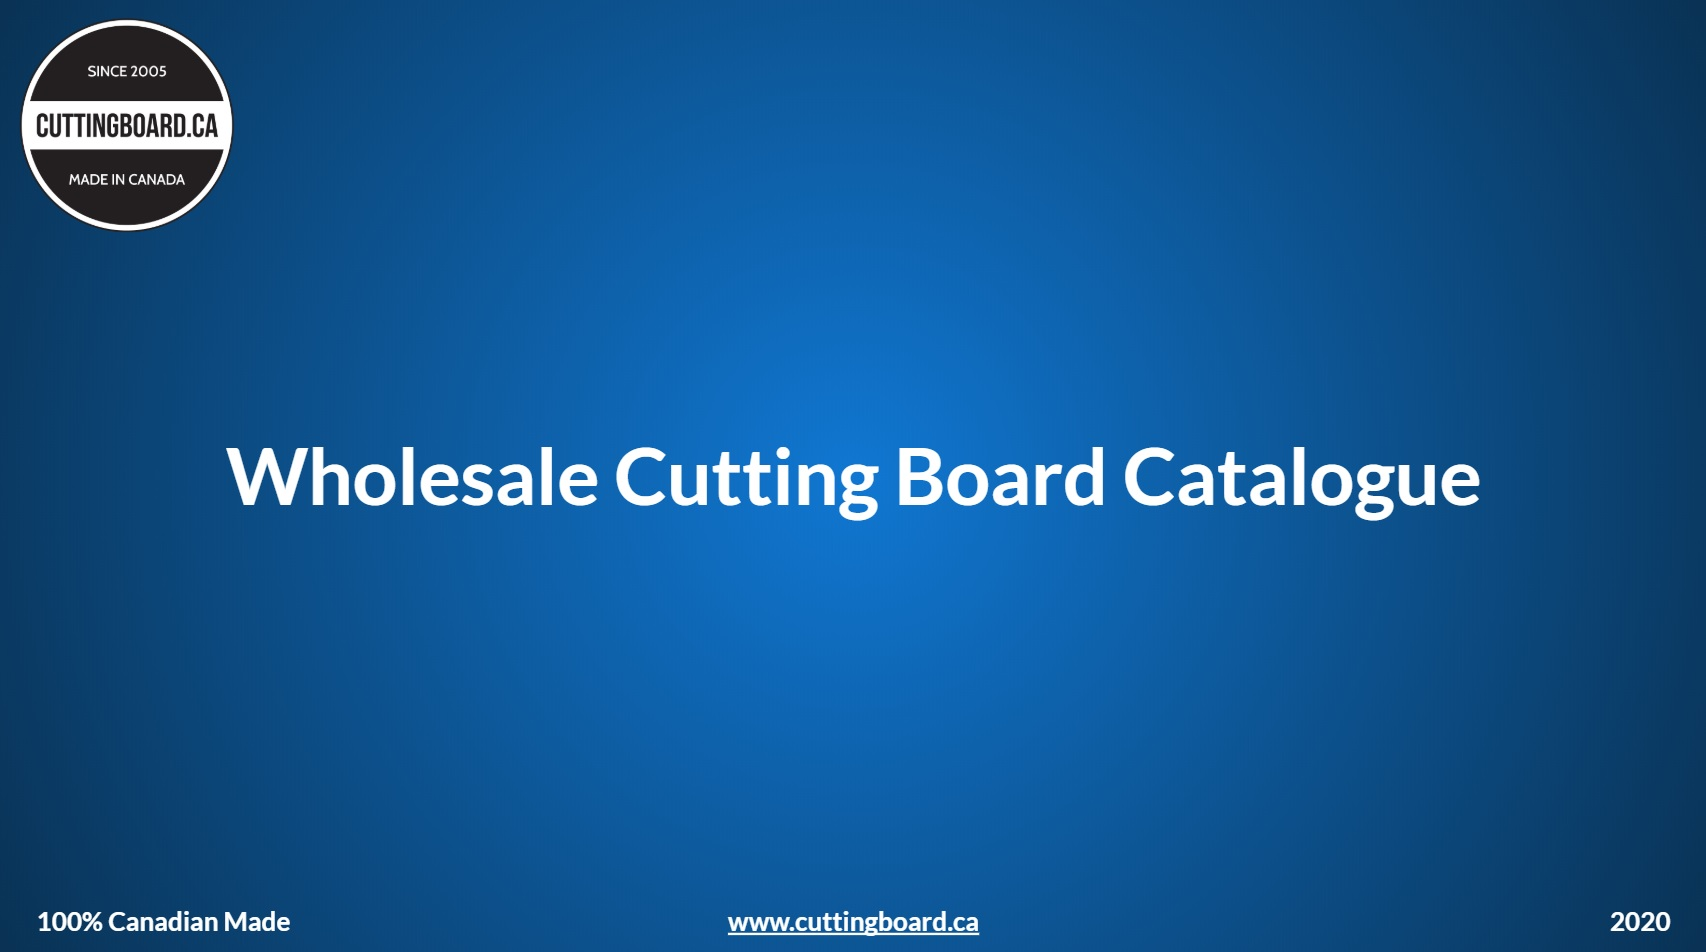 Wholesale-cutting-boards-catalogue-bulk-cutting-boards-Canada-2020-Cuttingboard.ca